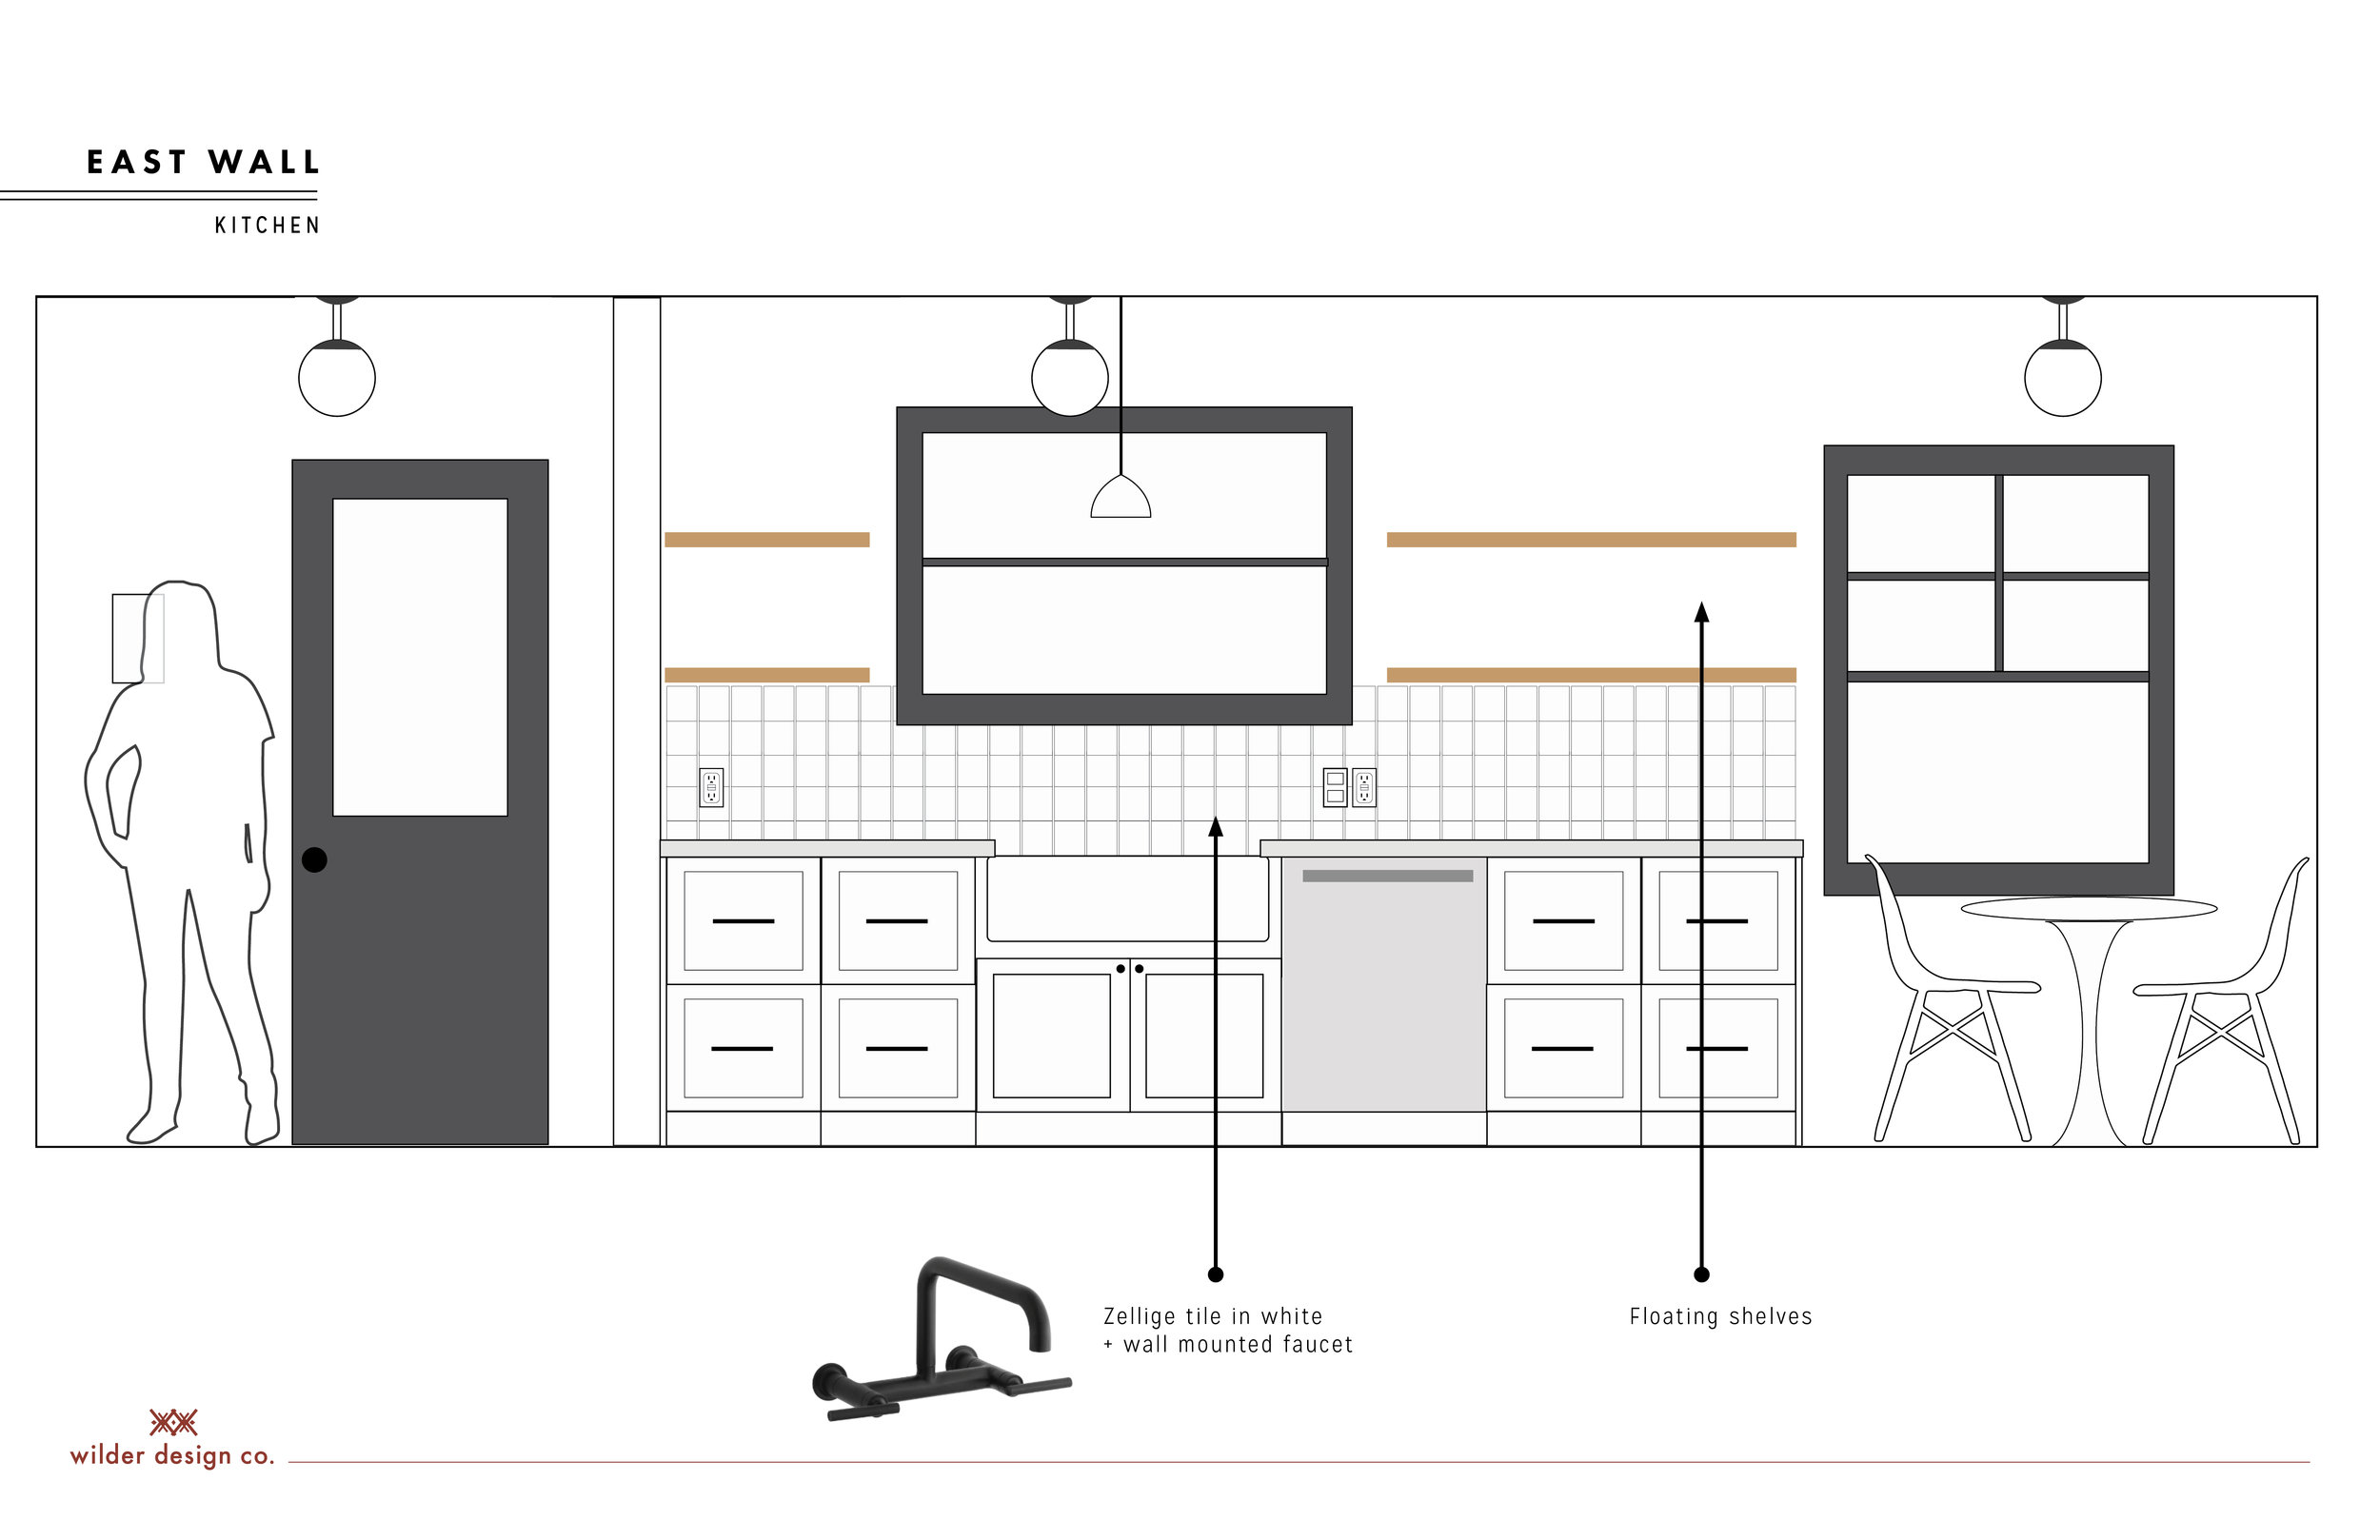 Kitchen_Plan_0430188.jpg